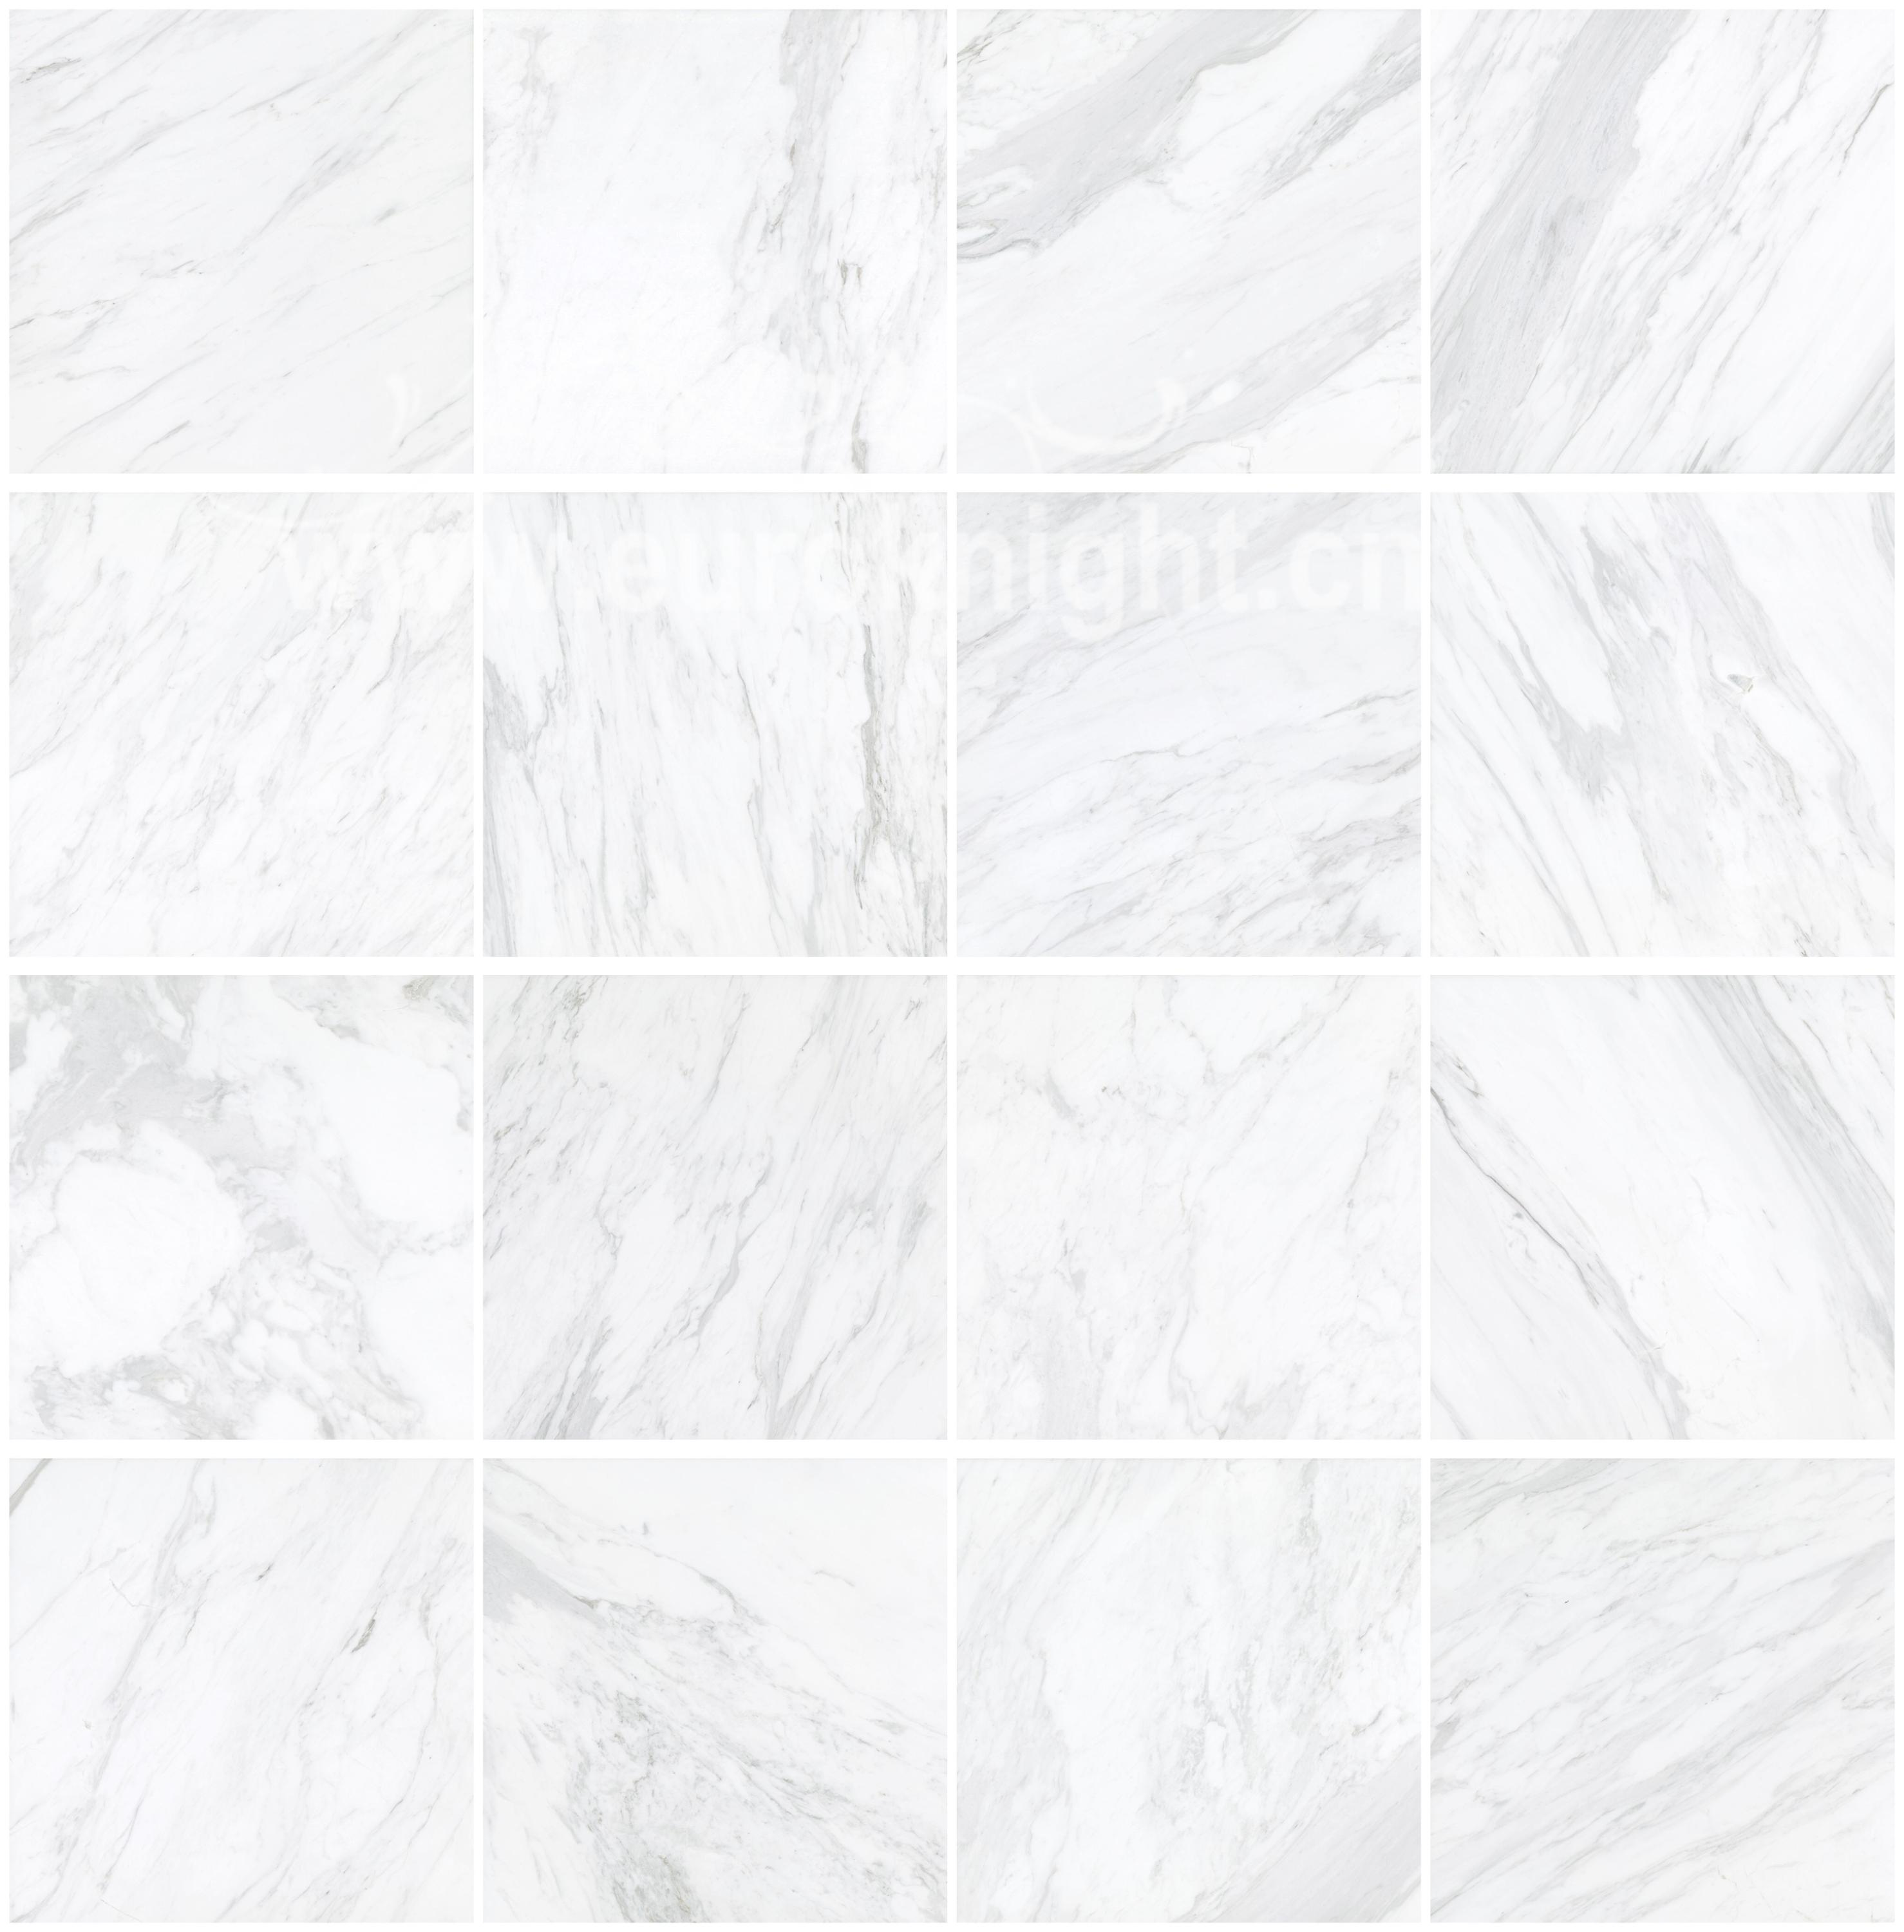 White Ceramic Floor Tiles. White Ceramic Floor Tiles I - Deltasport.co